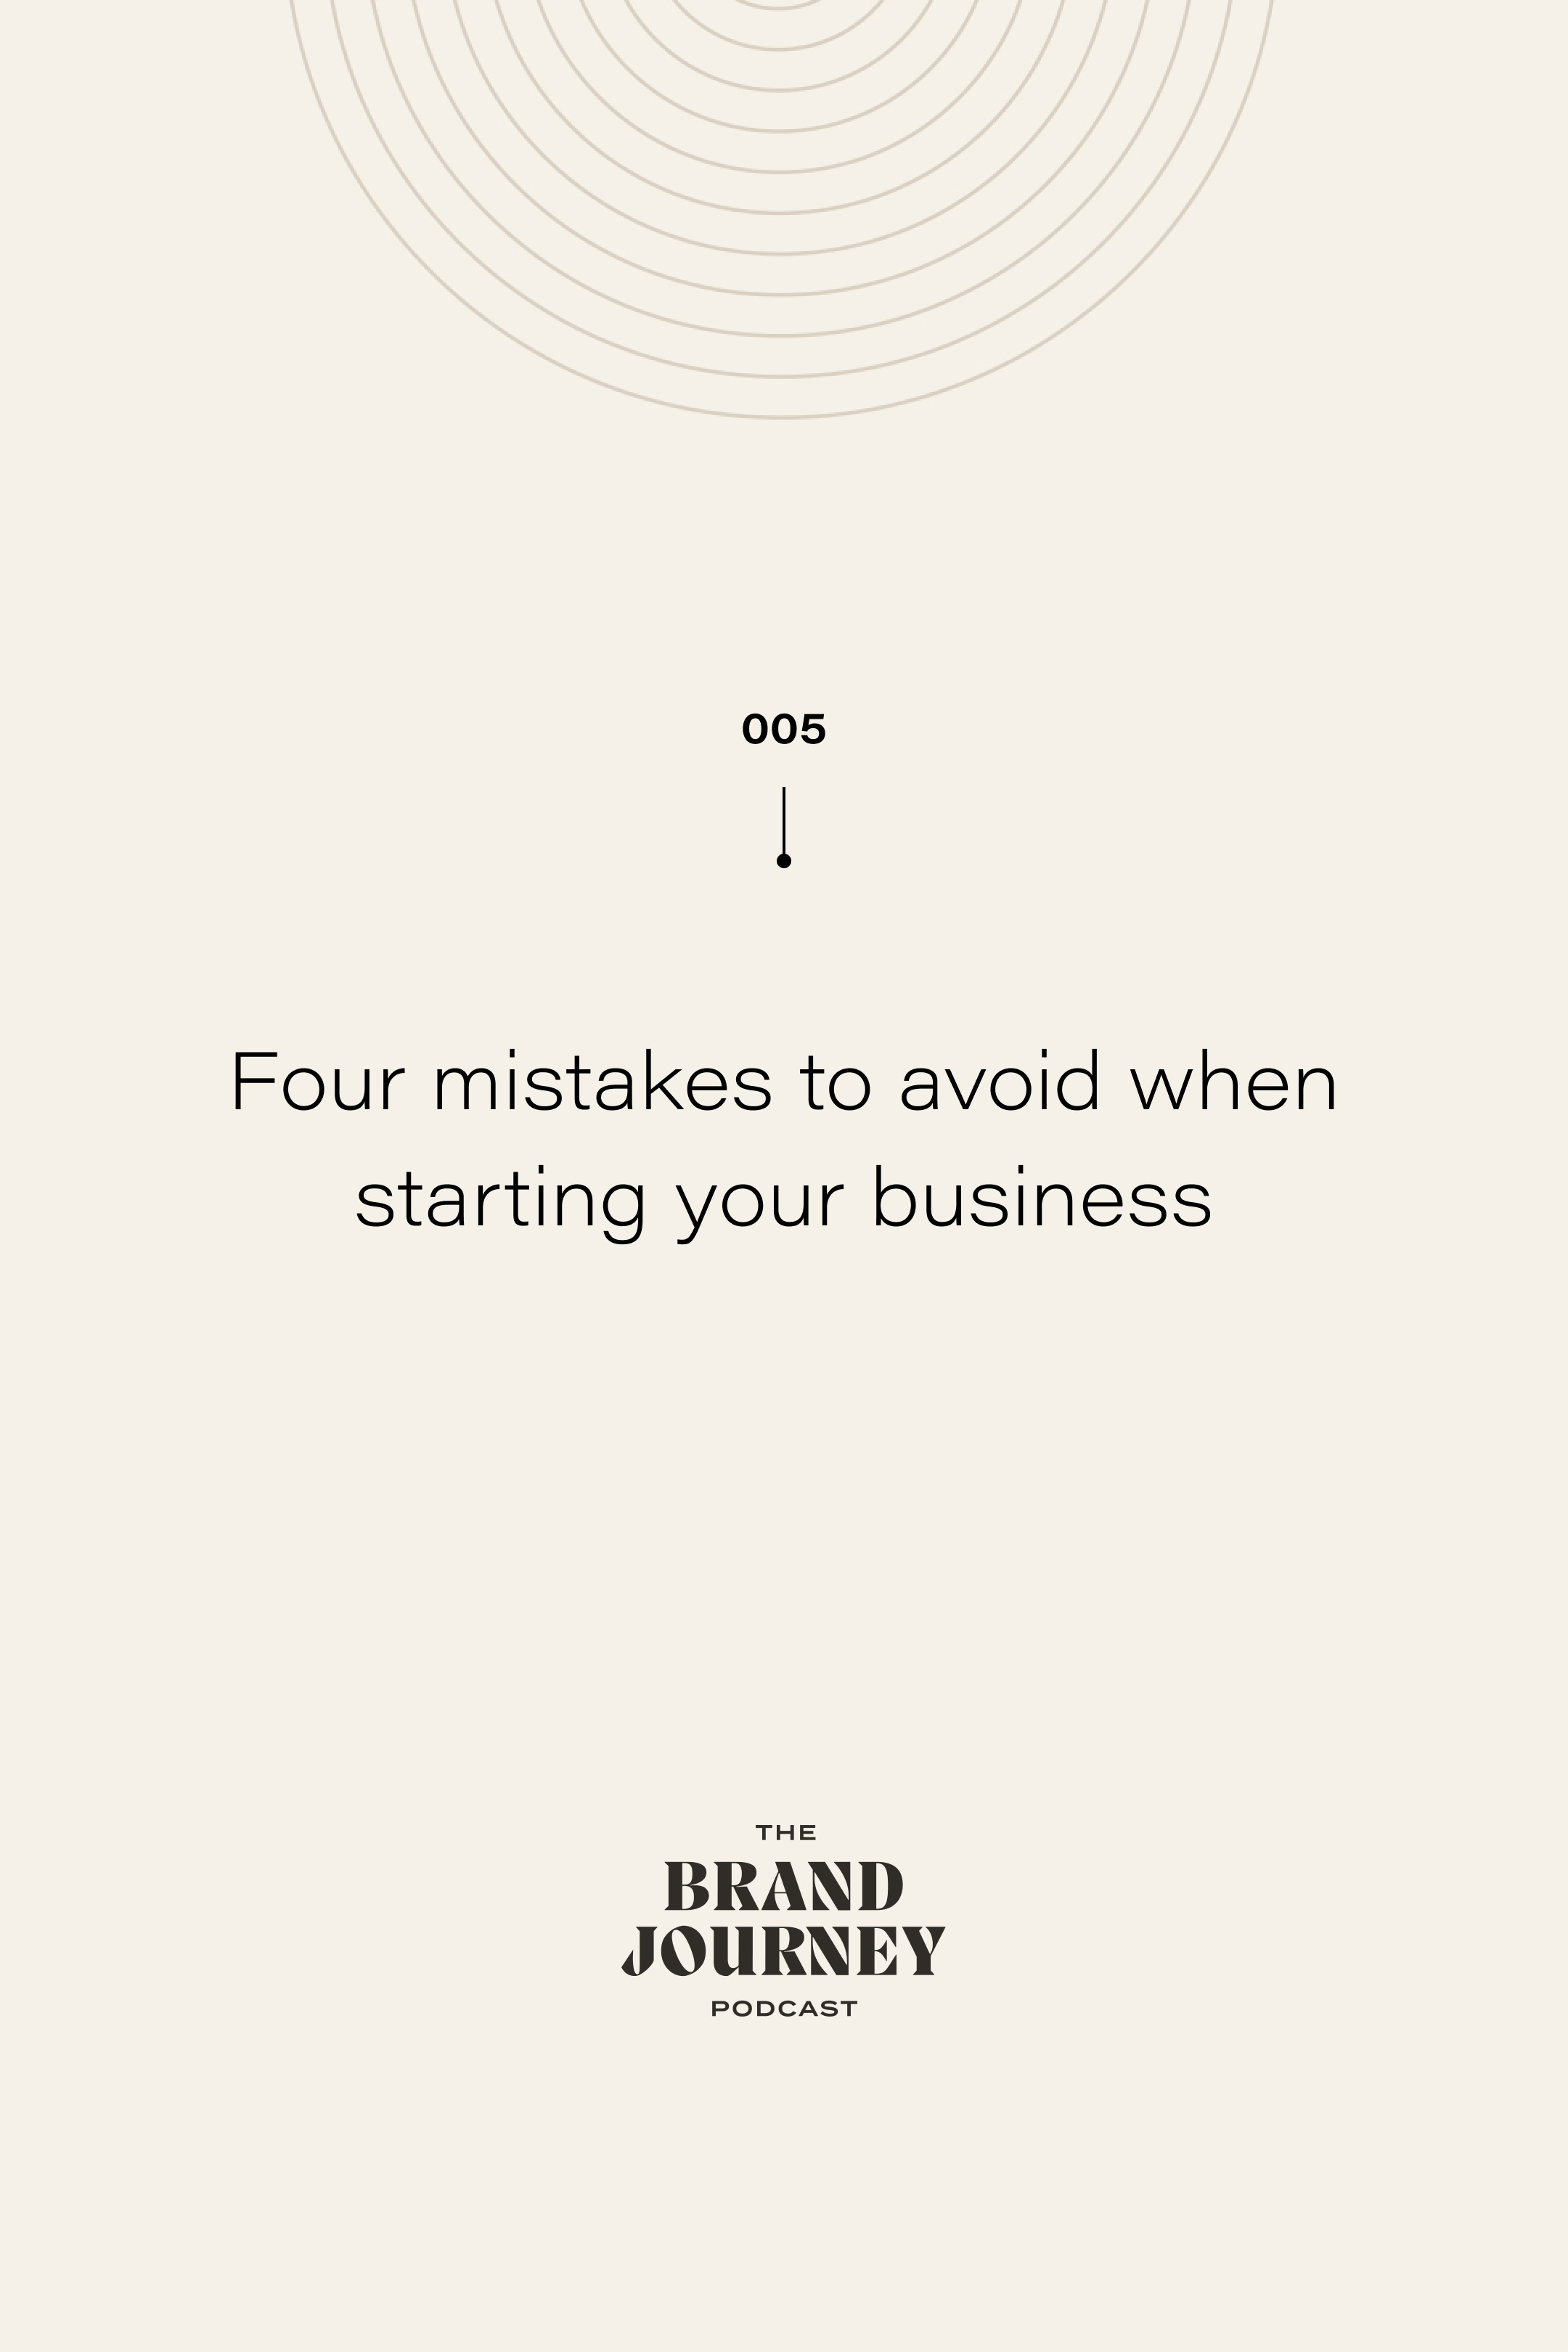 Four mistakes to avoid when starting your business